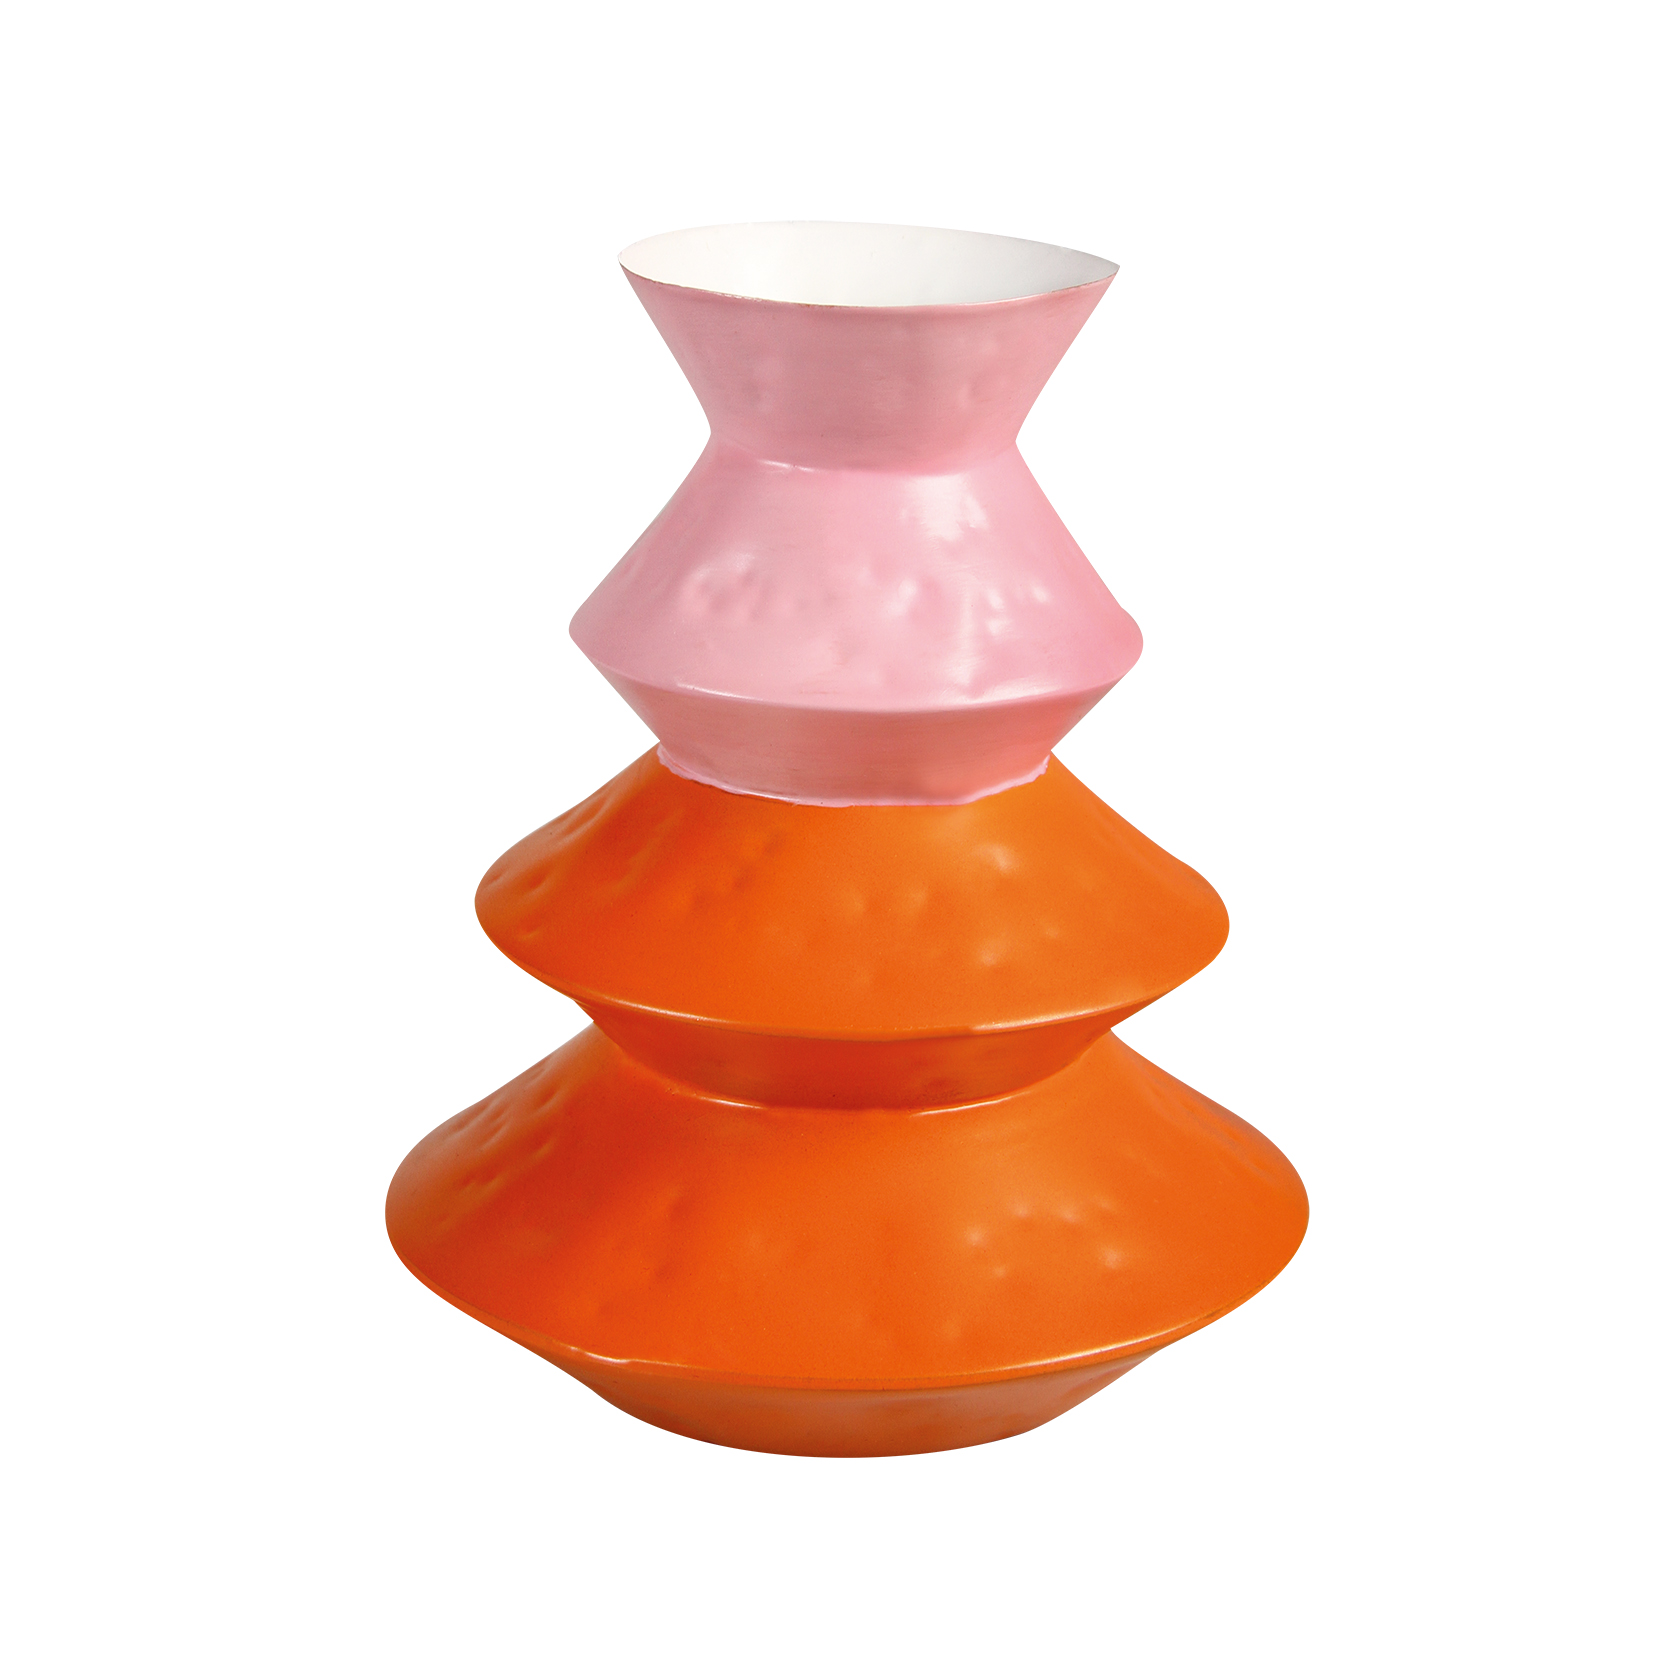 &k-vase-origami-orange-klevering